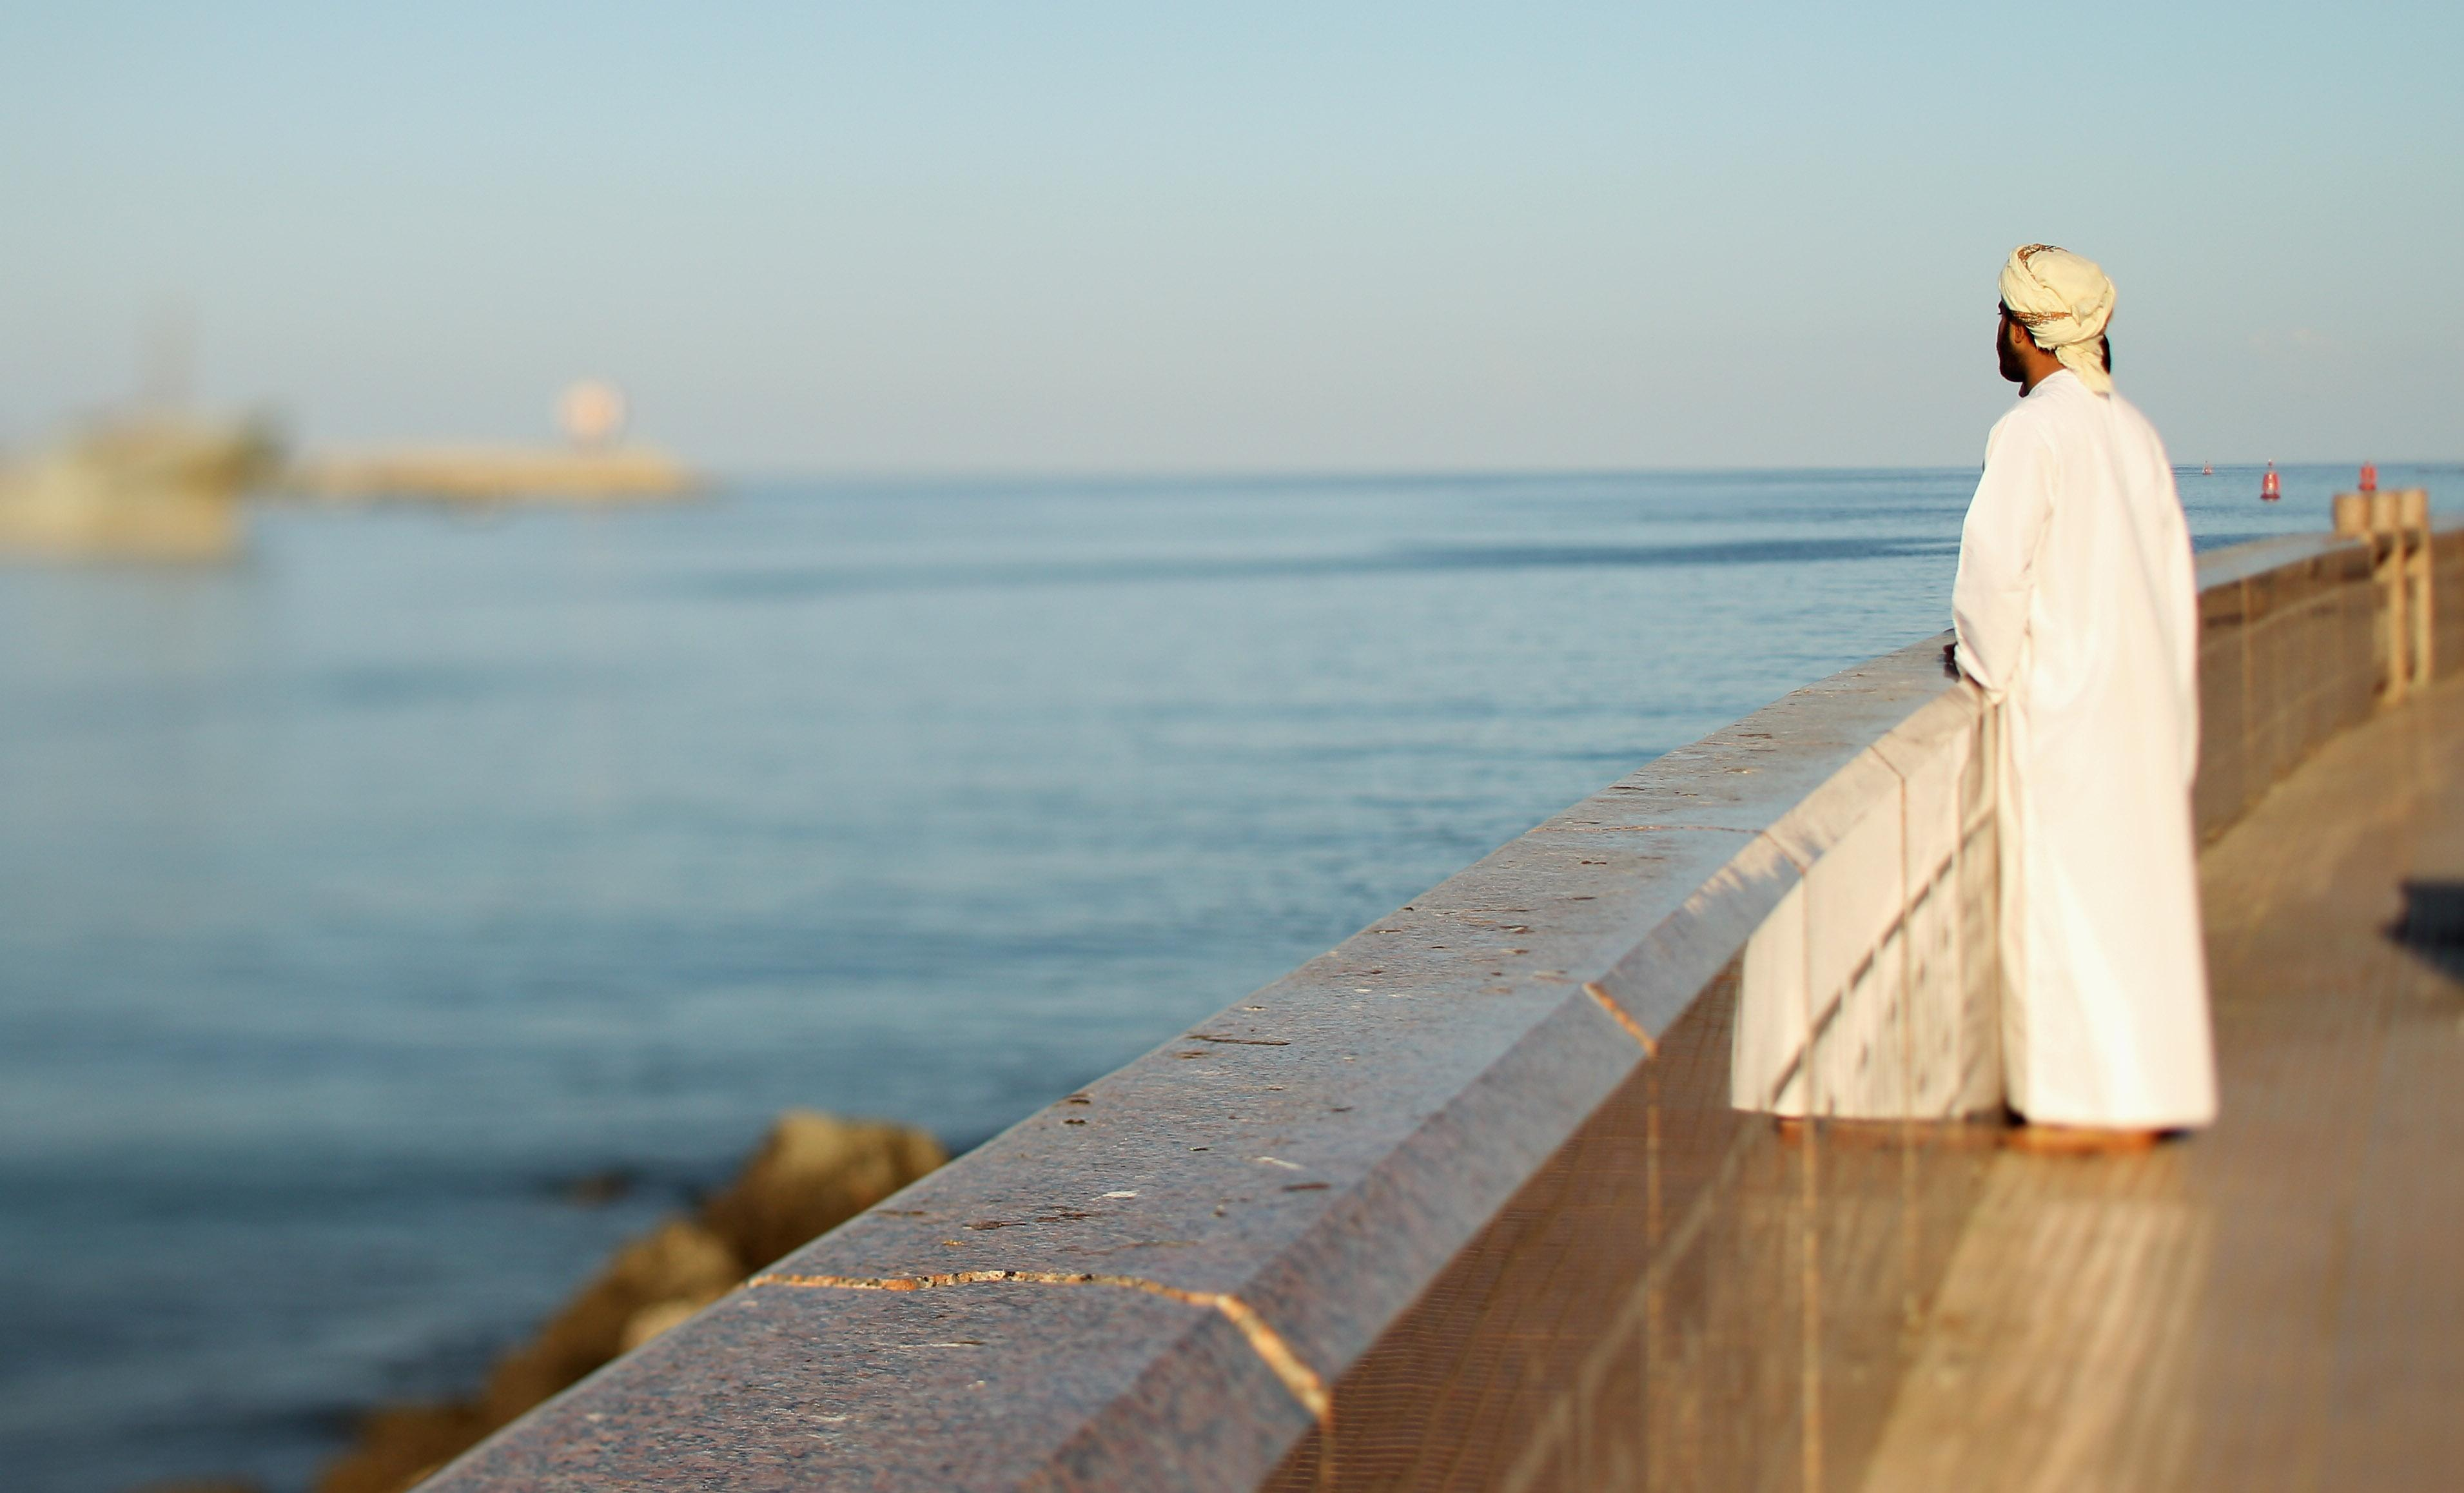 A local man looks out over Muscat harbor in Oman